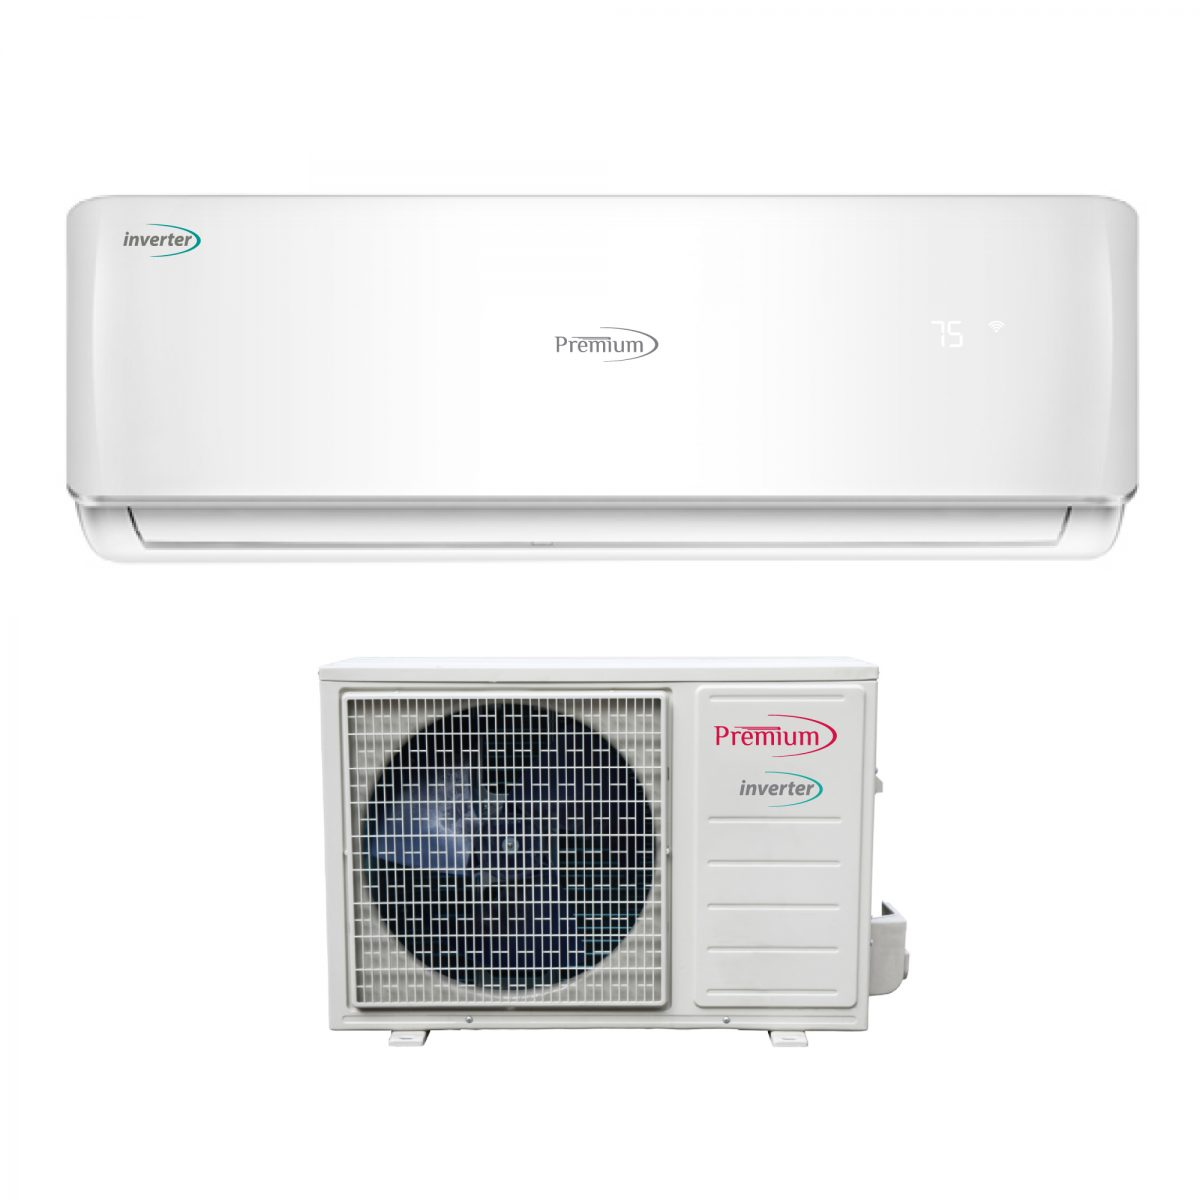 Minisplit 12,000 BTU, Premium, 110V, Cooling and Heating, Inverter Technology – Model: PIA122690A/700B